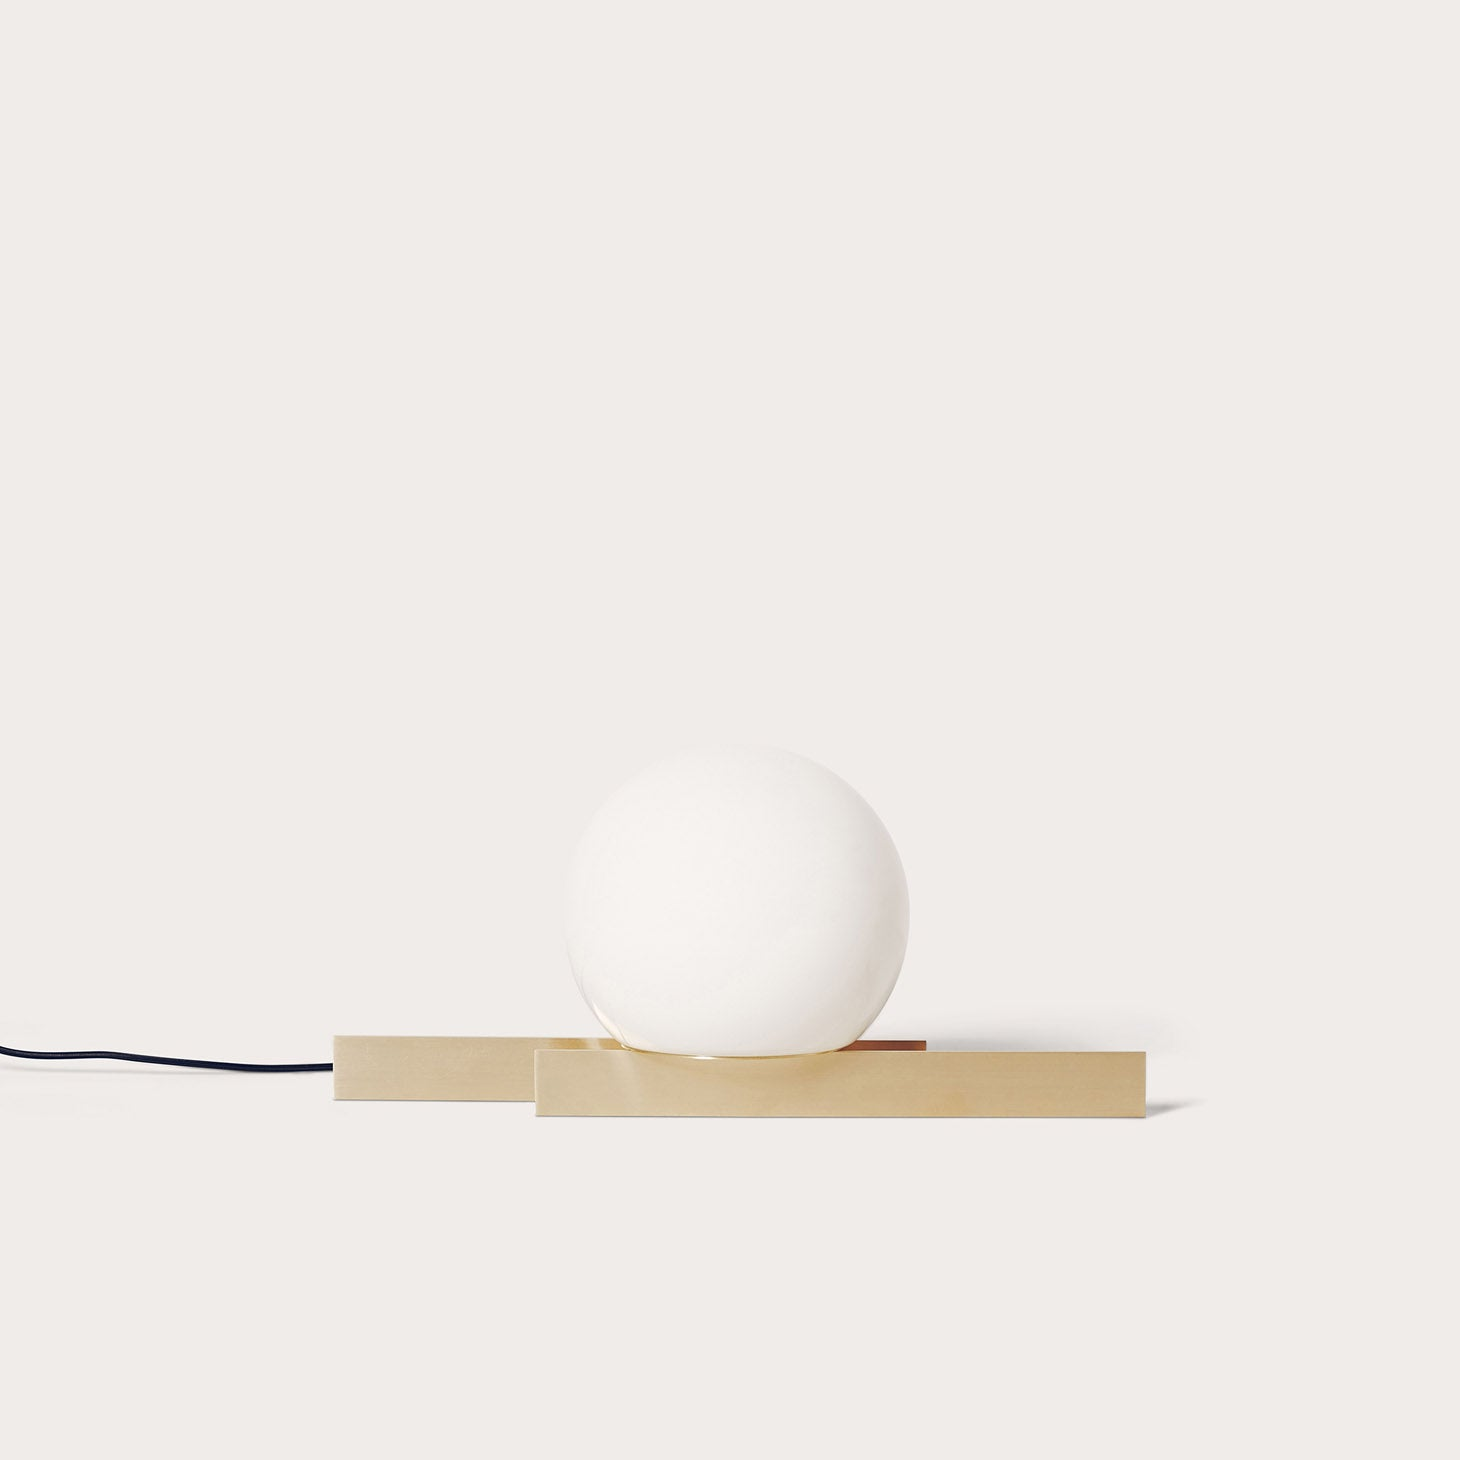 Somewhere in the Middle Lighting Michael Anastassiades Designer Furniture Sku: 717-160-10010